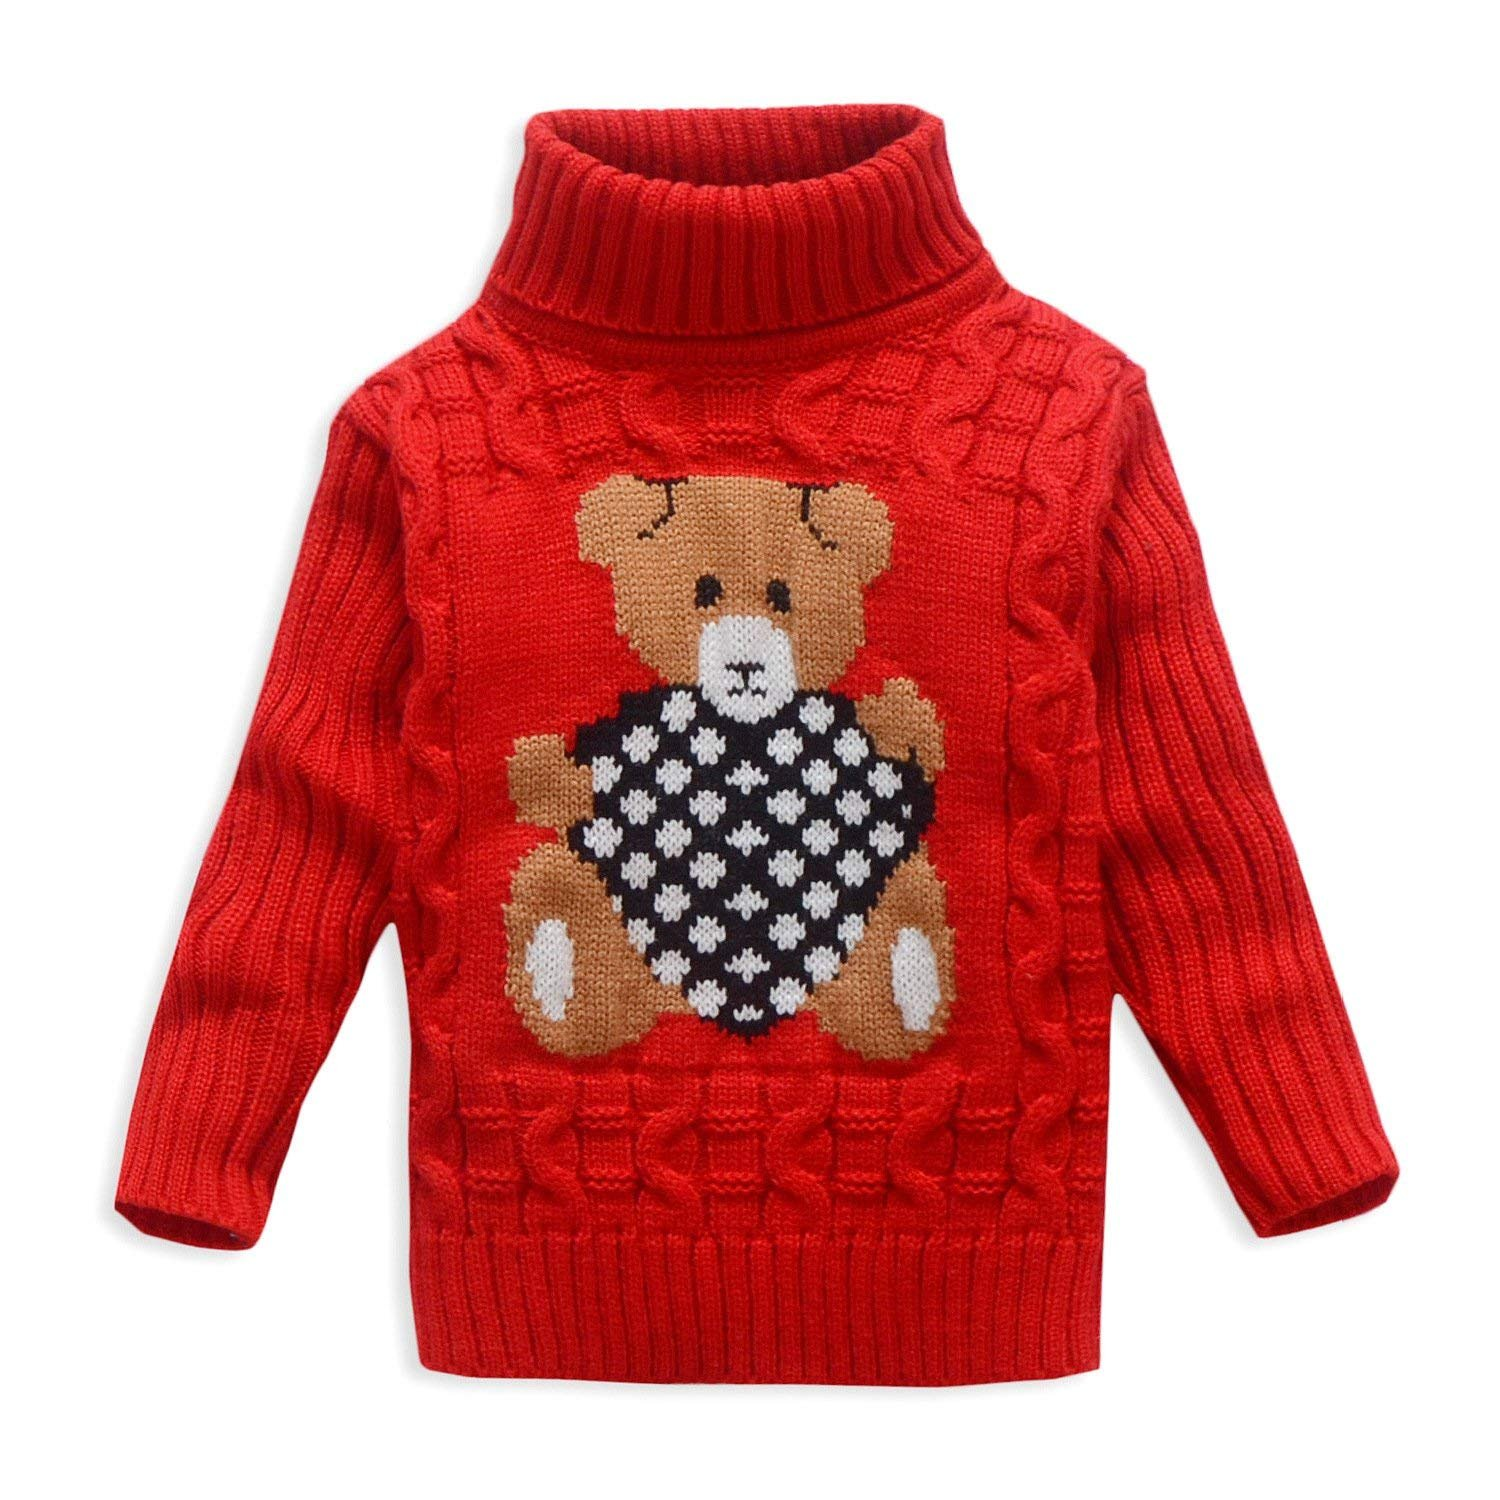 TUTUYU Kid Boys Girls Childrenr Beer Knit Turtleneck Sweater